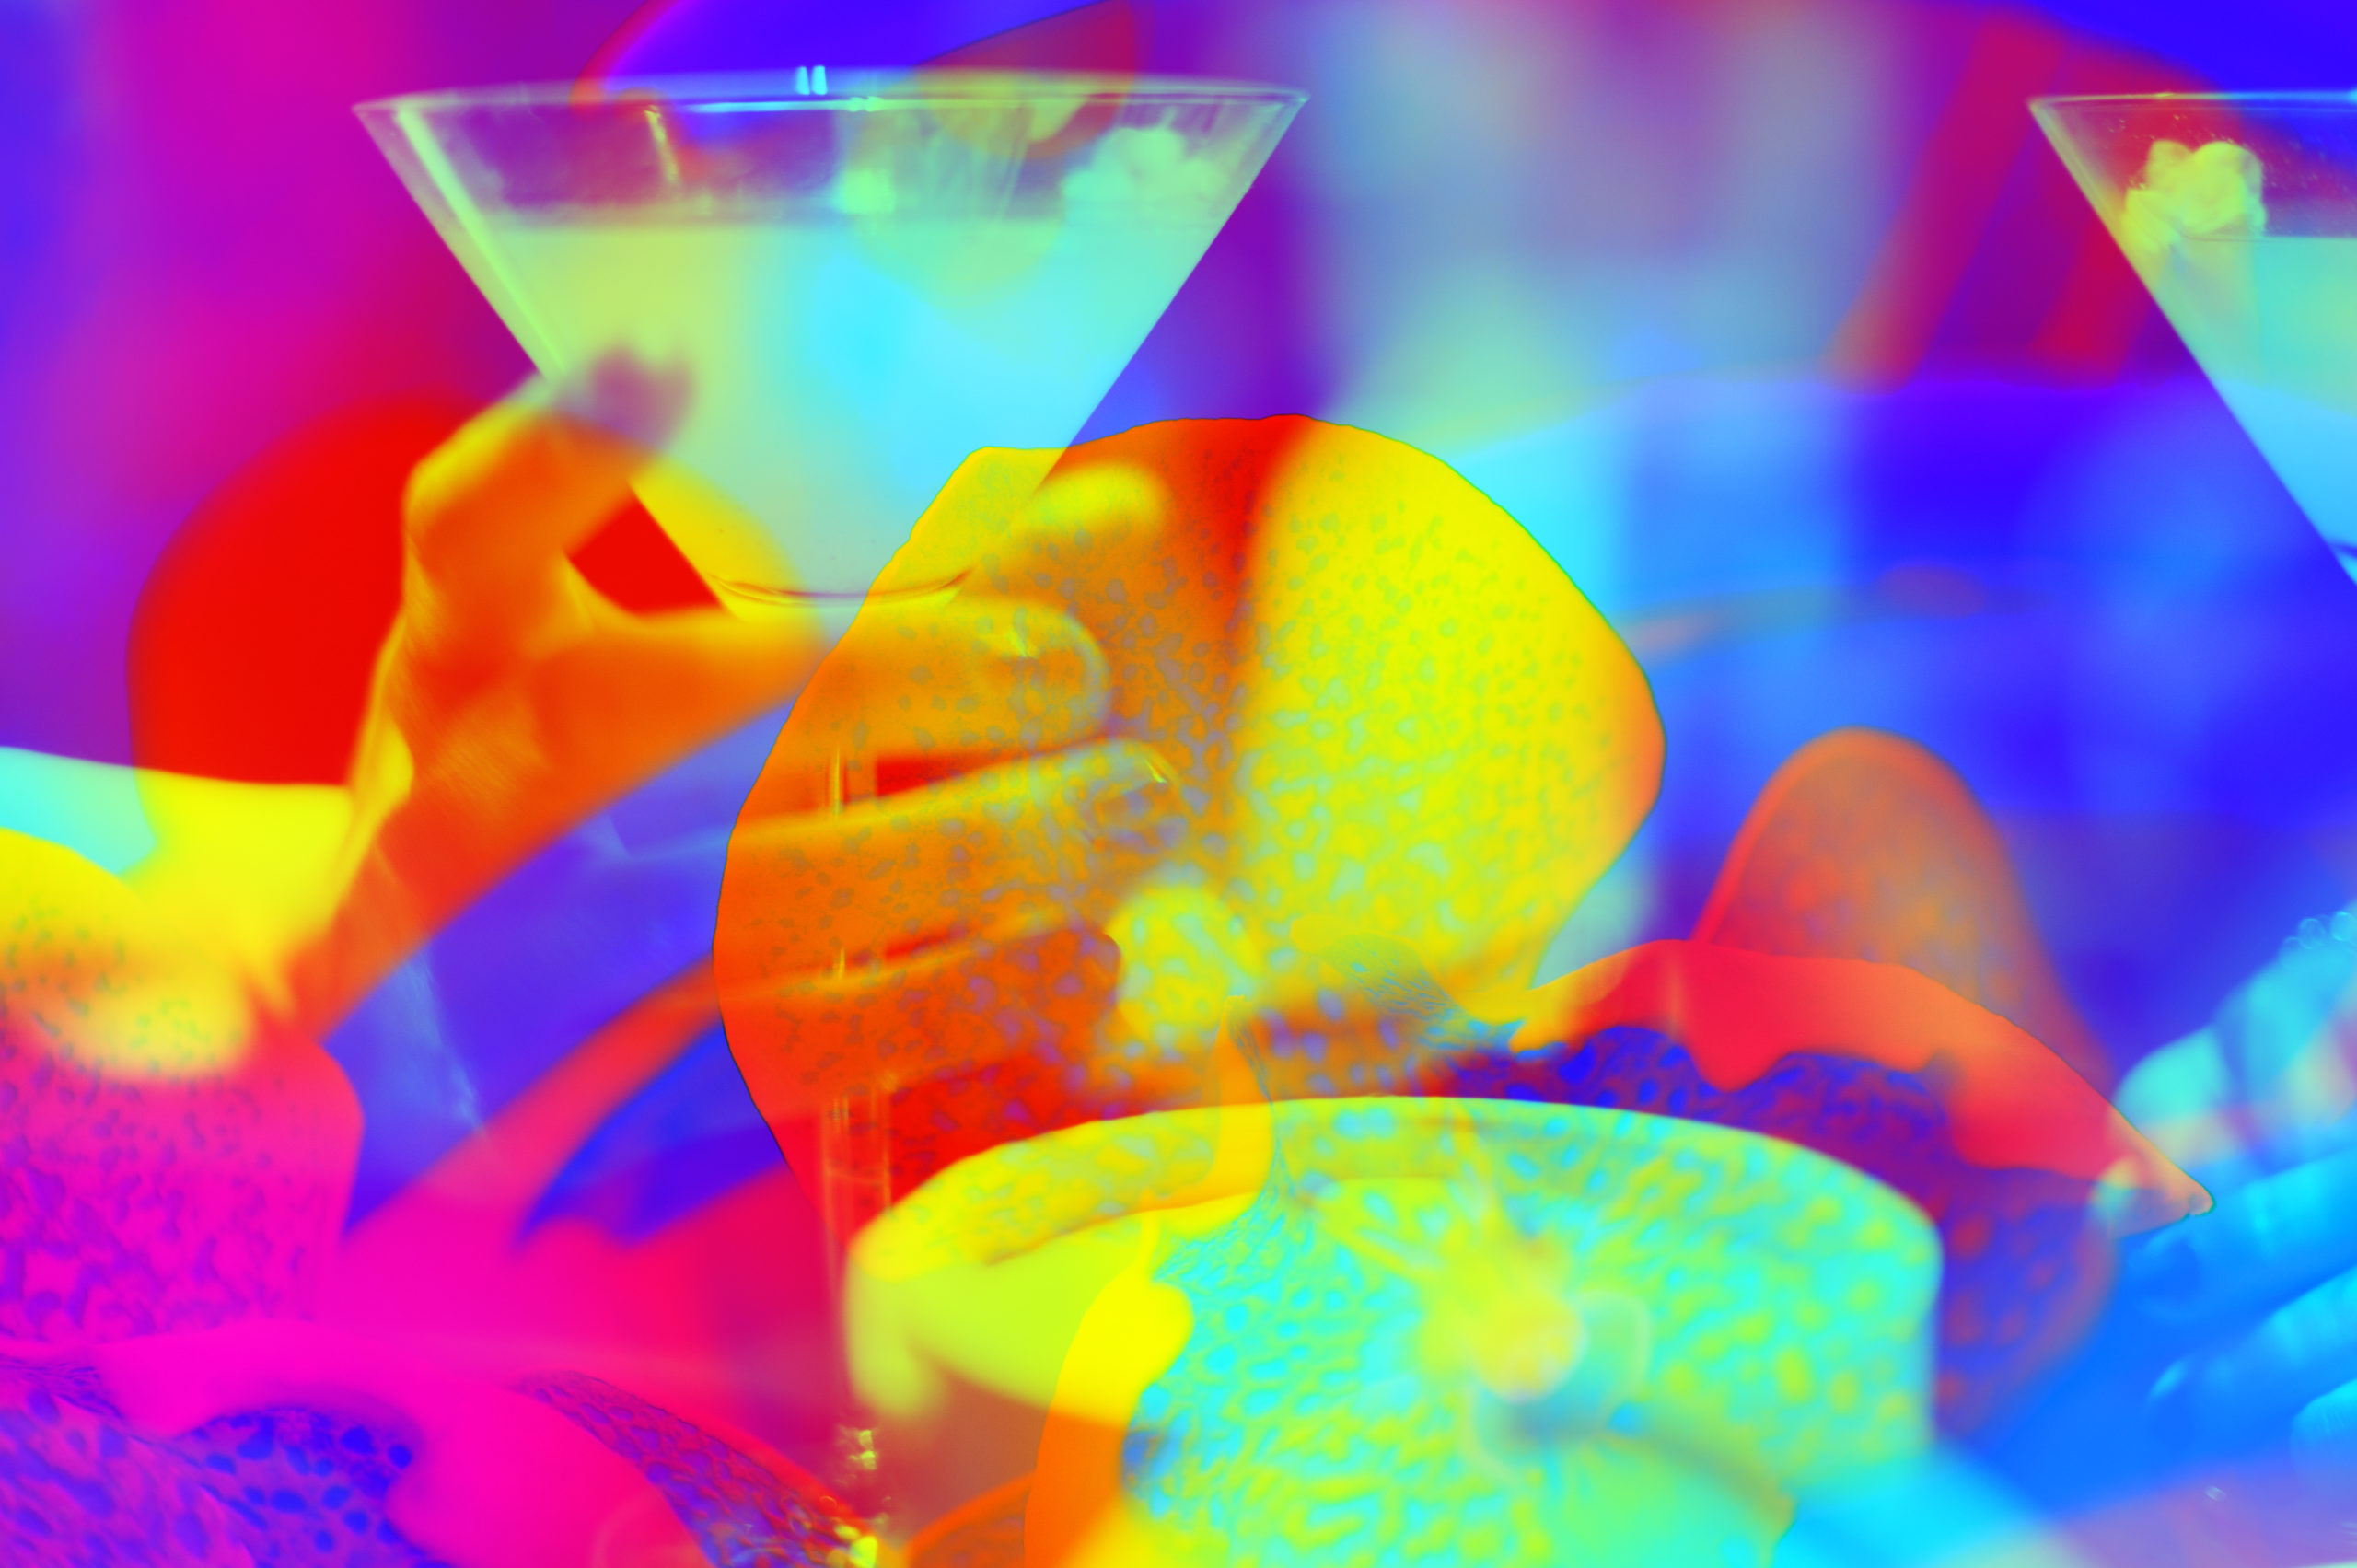 Blurred cocktails